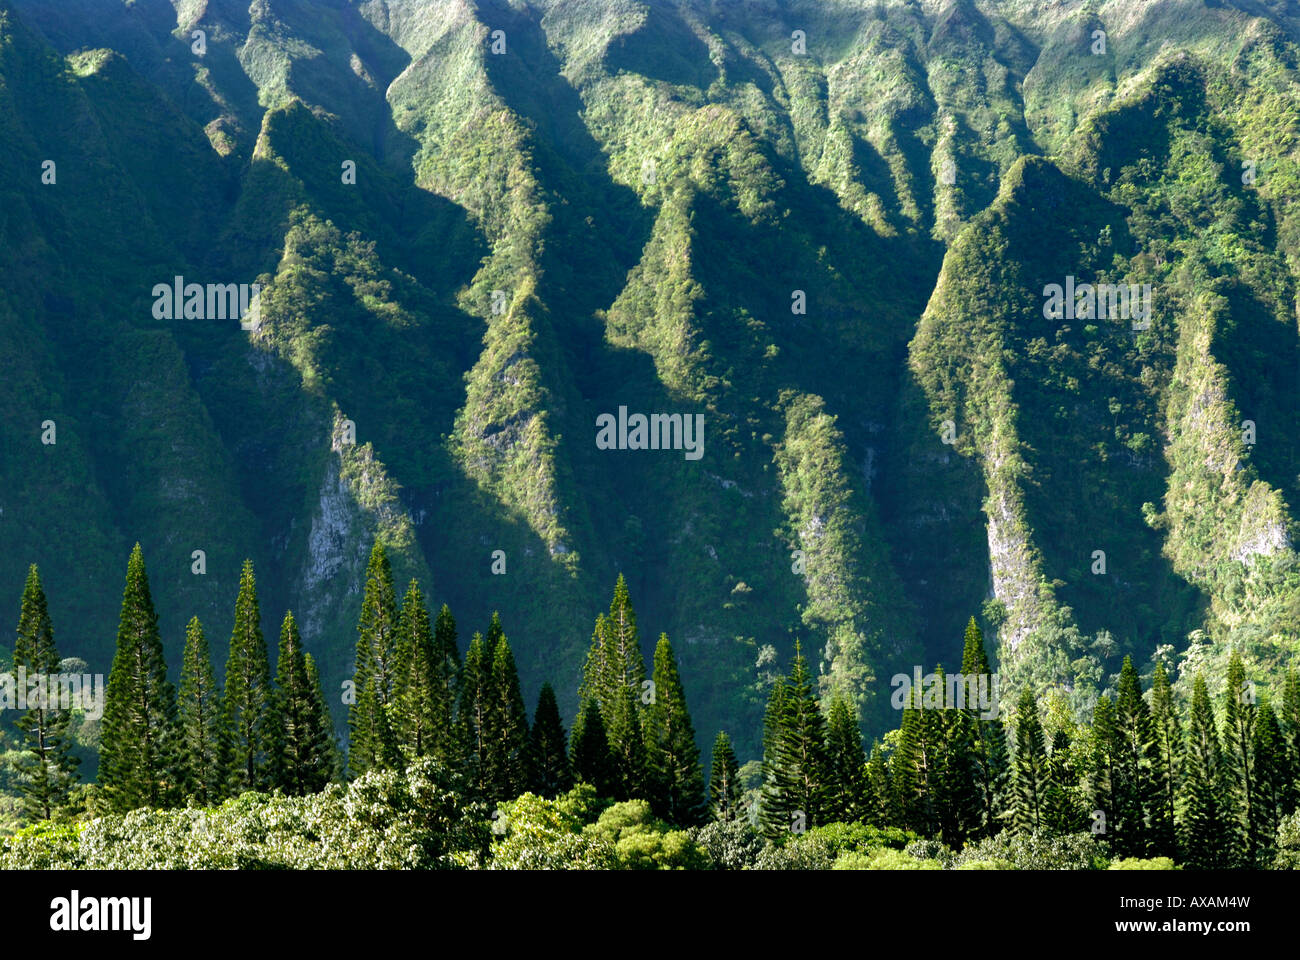 Ko'olau Mountain Range it s actually one long mountain is over 30 miles in length and peaks at 3,150 feet - Stock Image